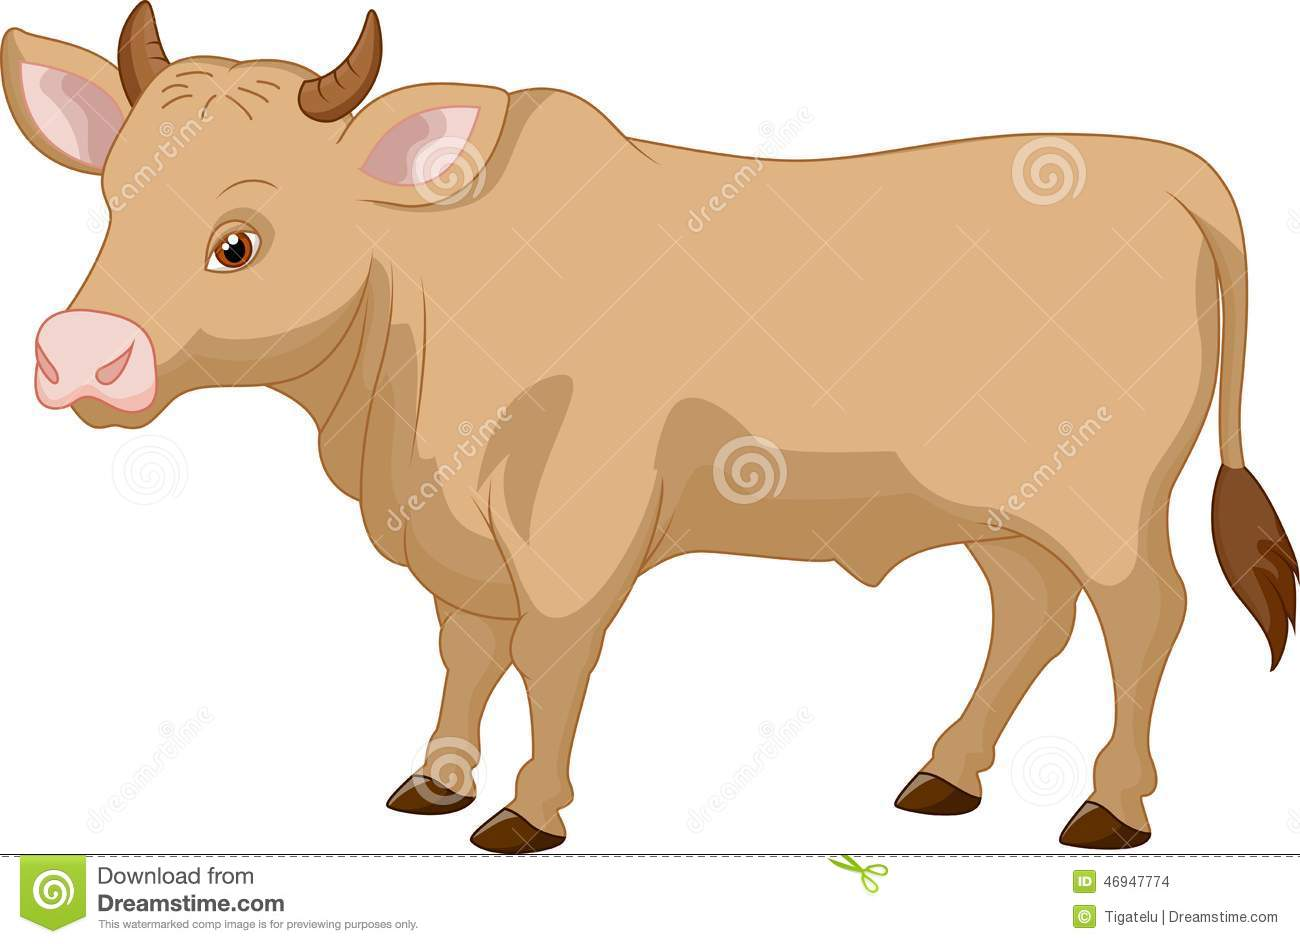 cartoon cow posing stock vector illustration of agriculture 46947774 dreamstime com